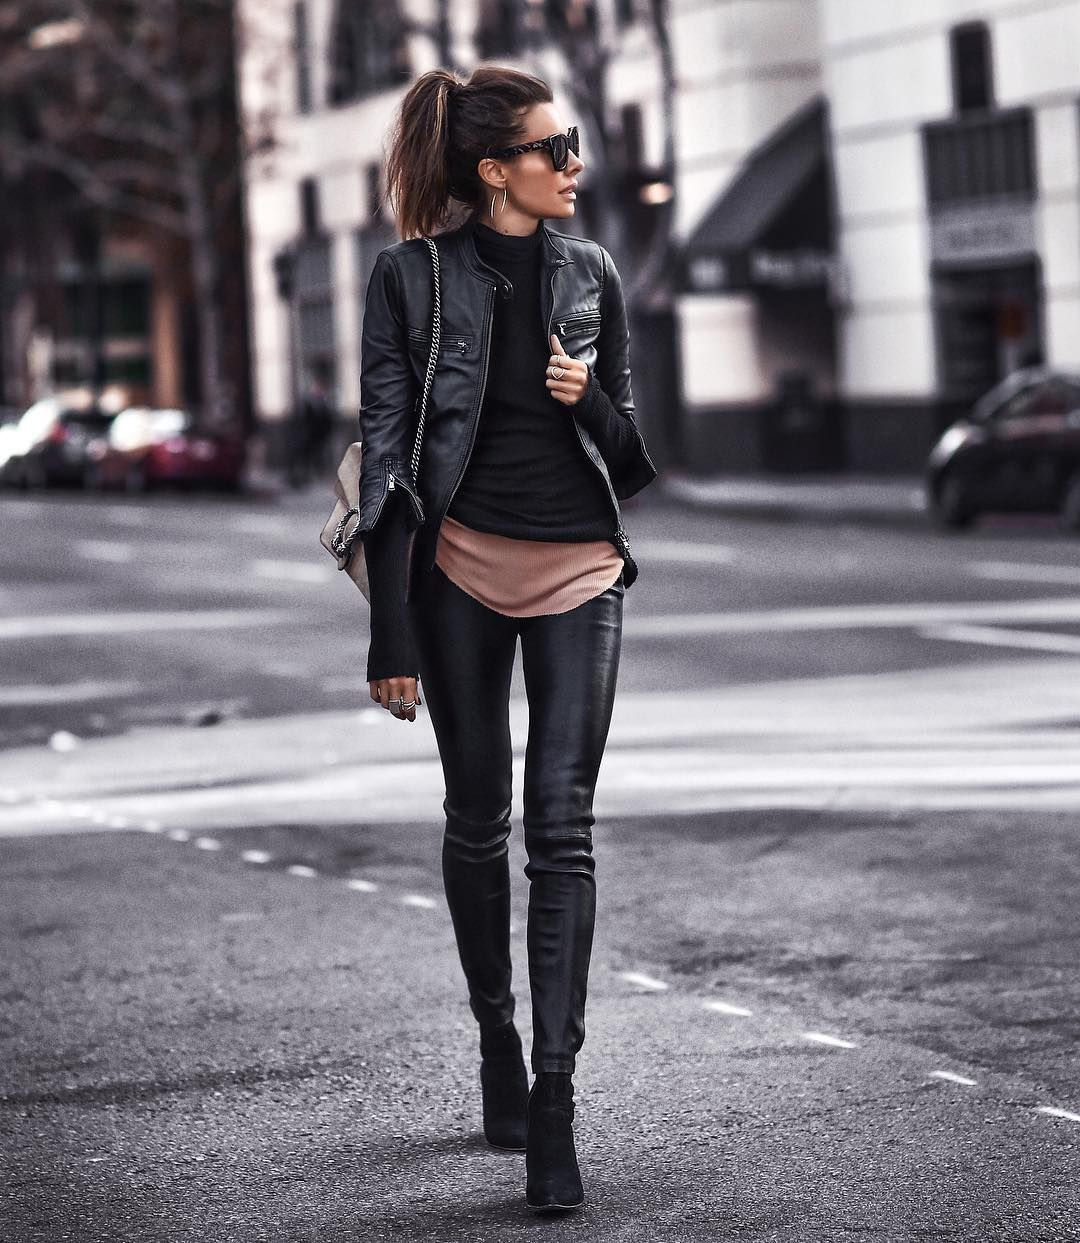 Never Too Much Leather Fashioned Chic Outfits With Leggings Leather Leggings Outfit Club Outfits For Women [ 1243 x 1080 Pixel ]